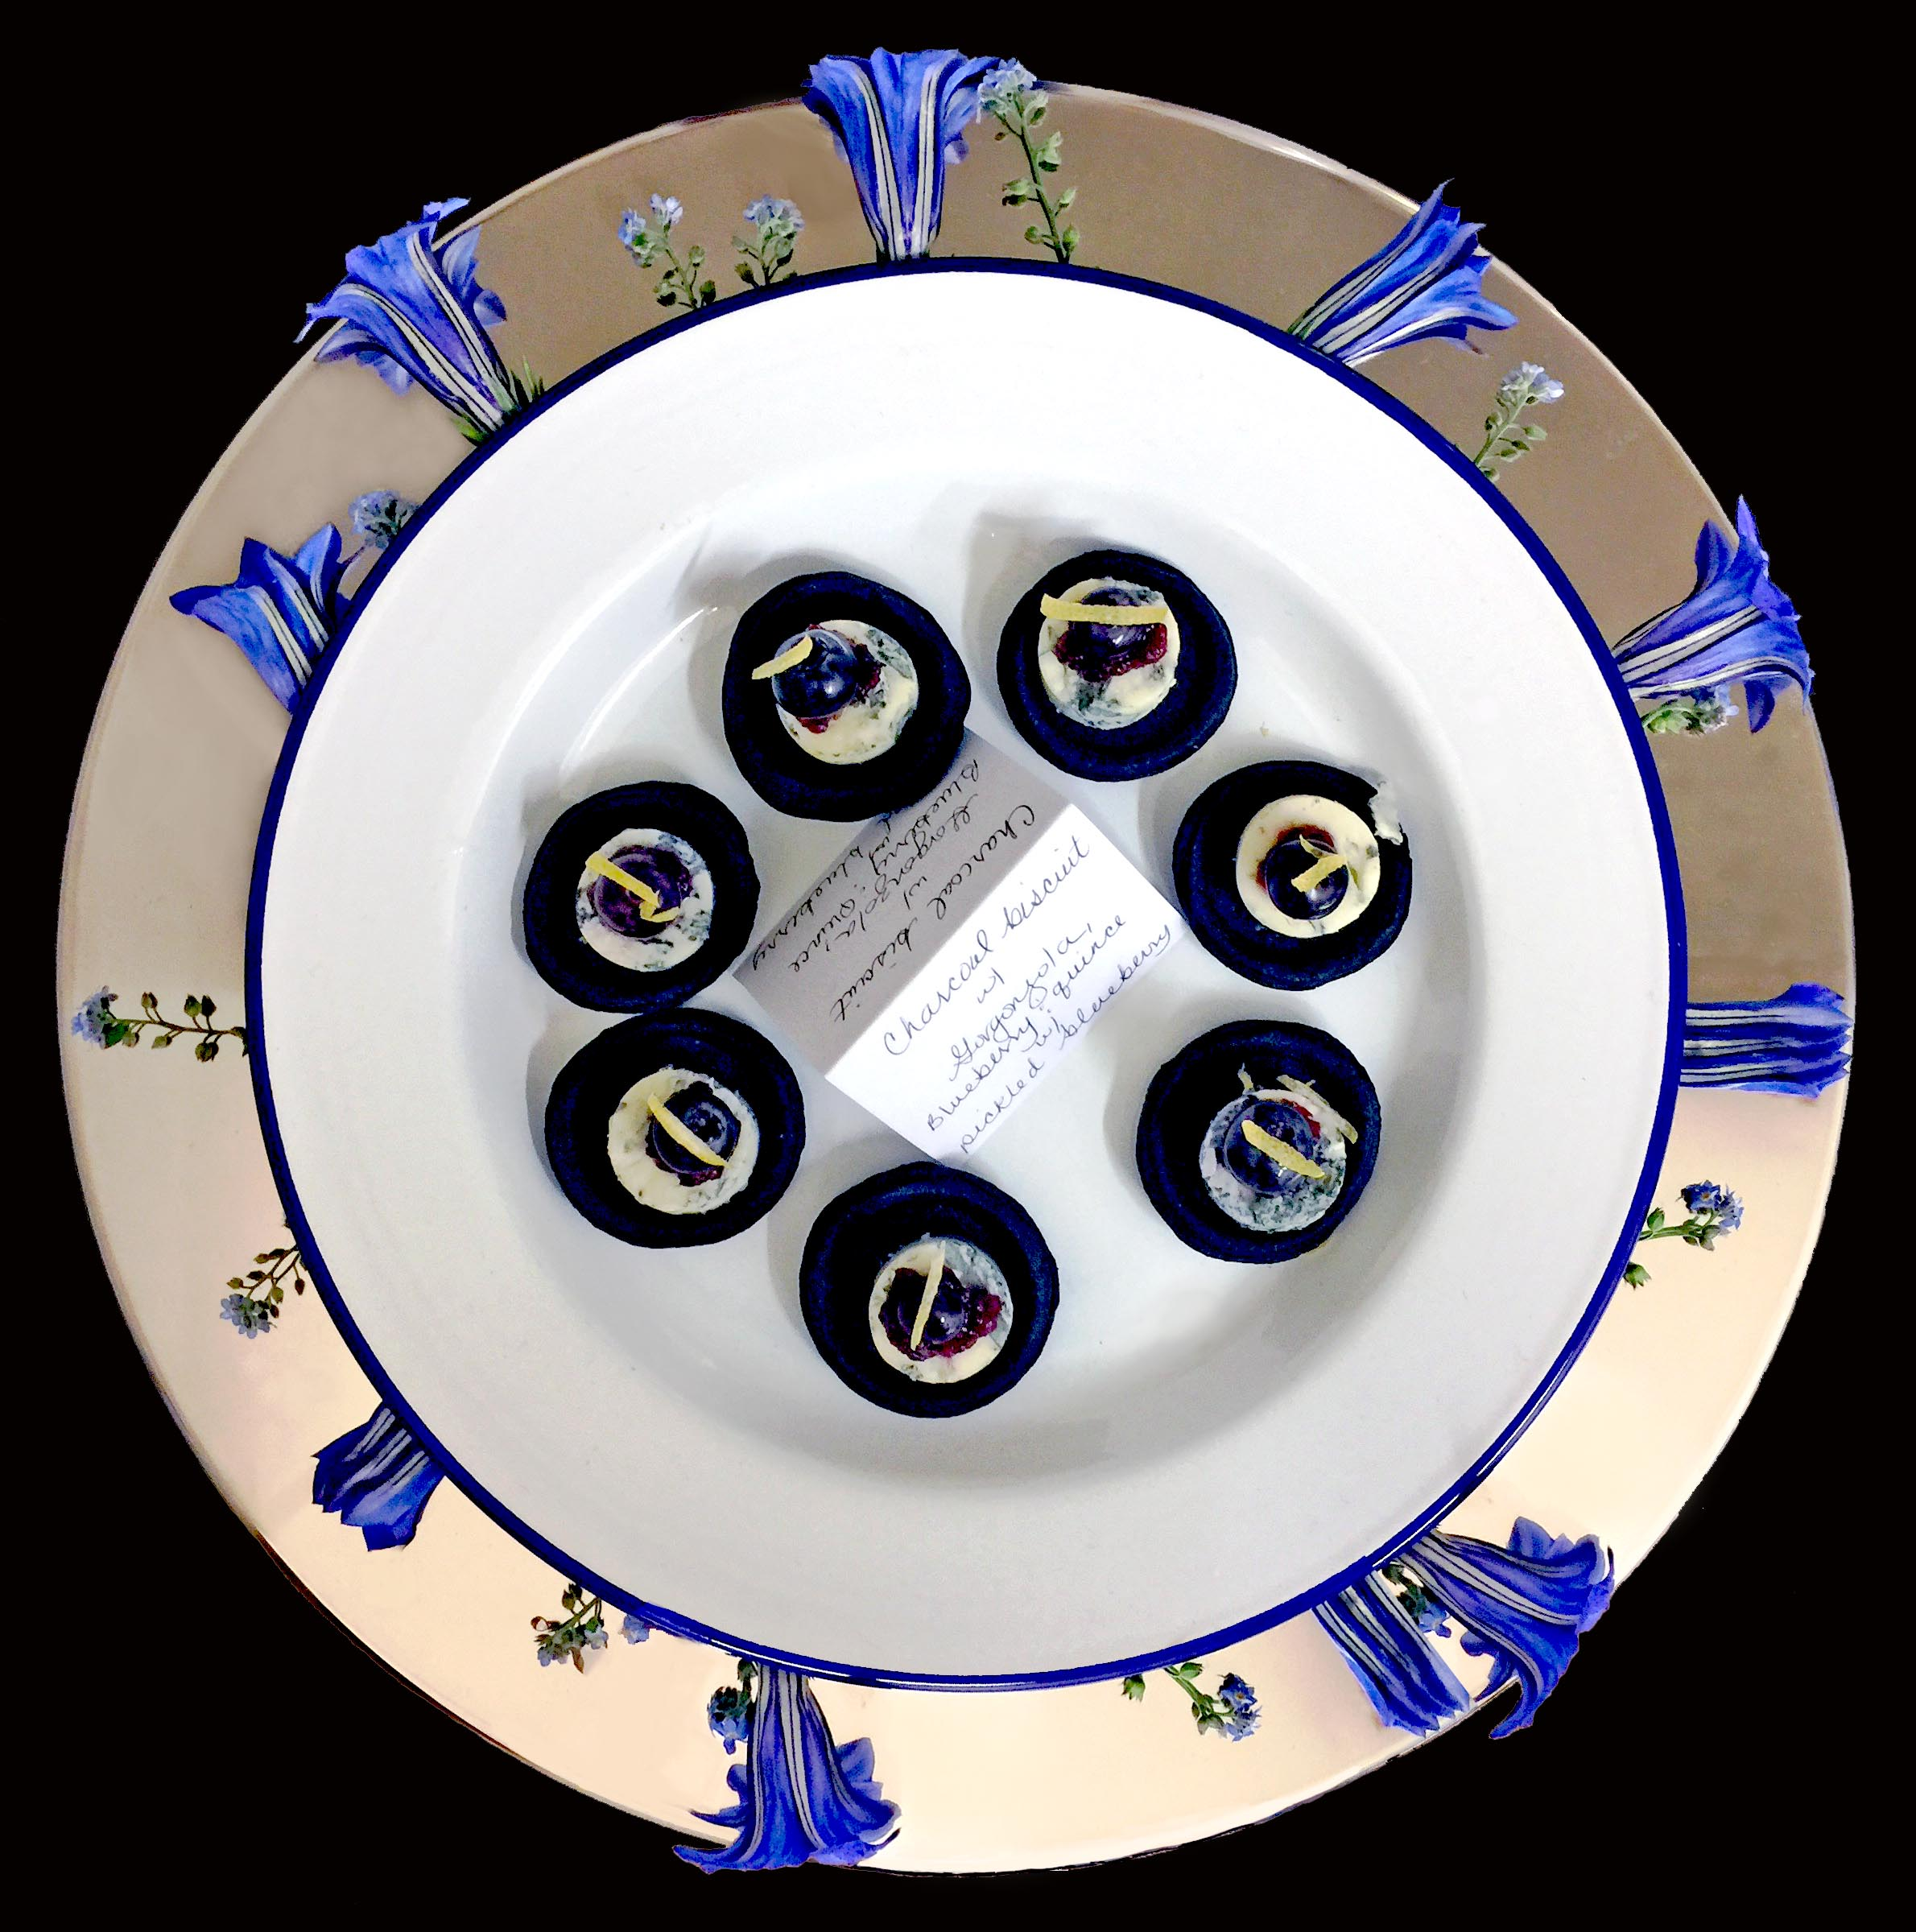 Tray of charcoal biscuit canapés served on an enamel plate within a sterling silver inset plate and decorated with fresh forget-me-not and gentiana flowers.